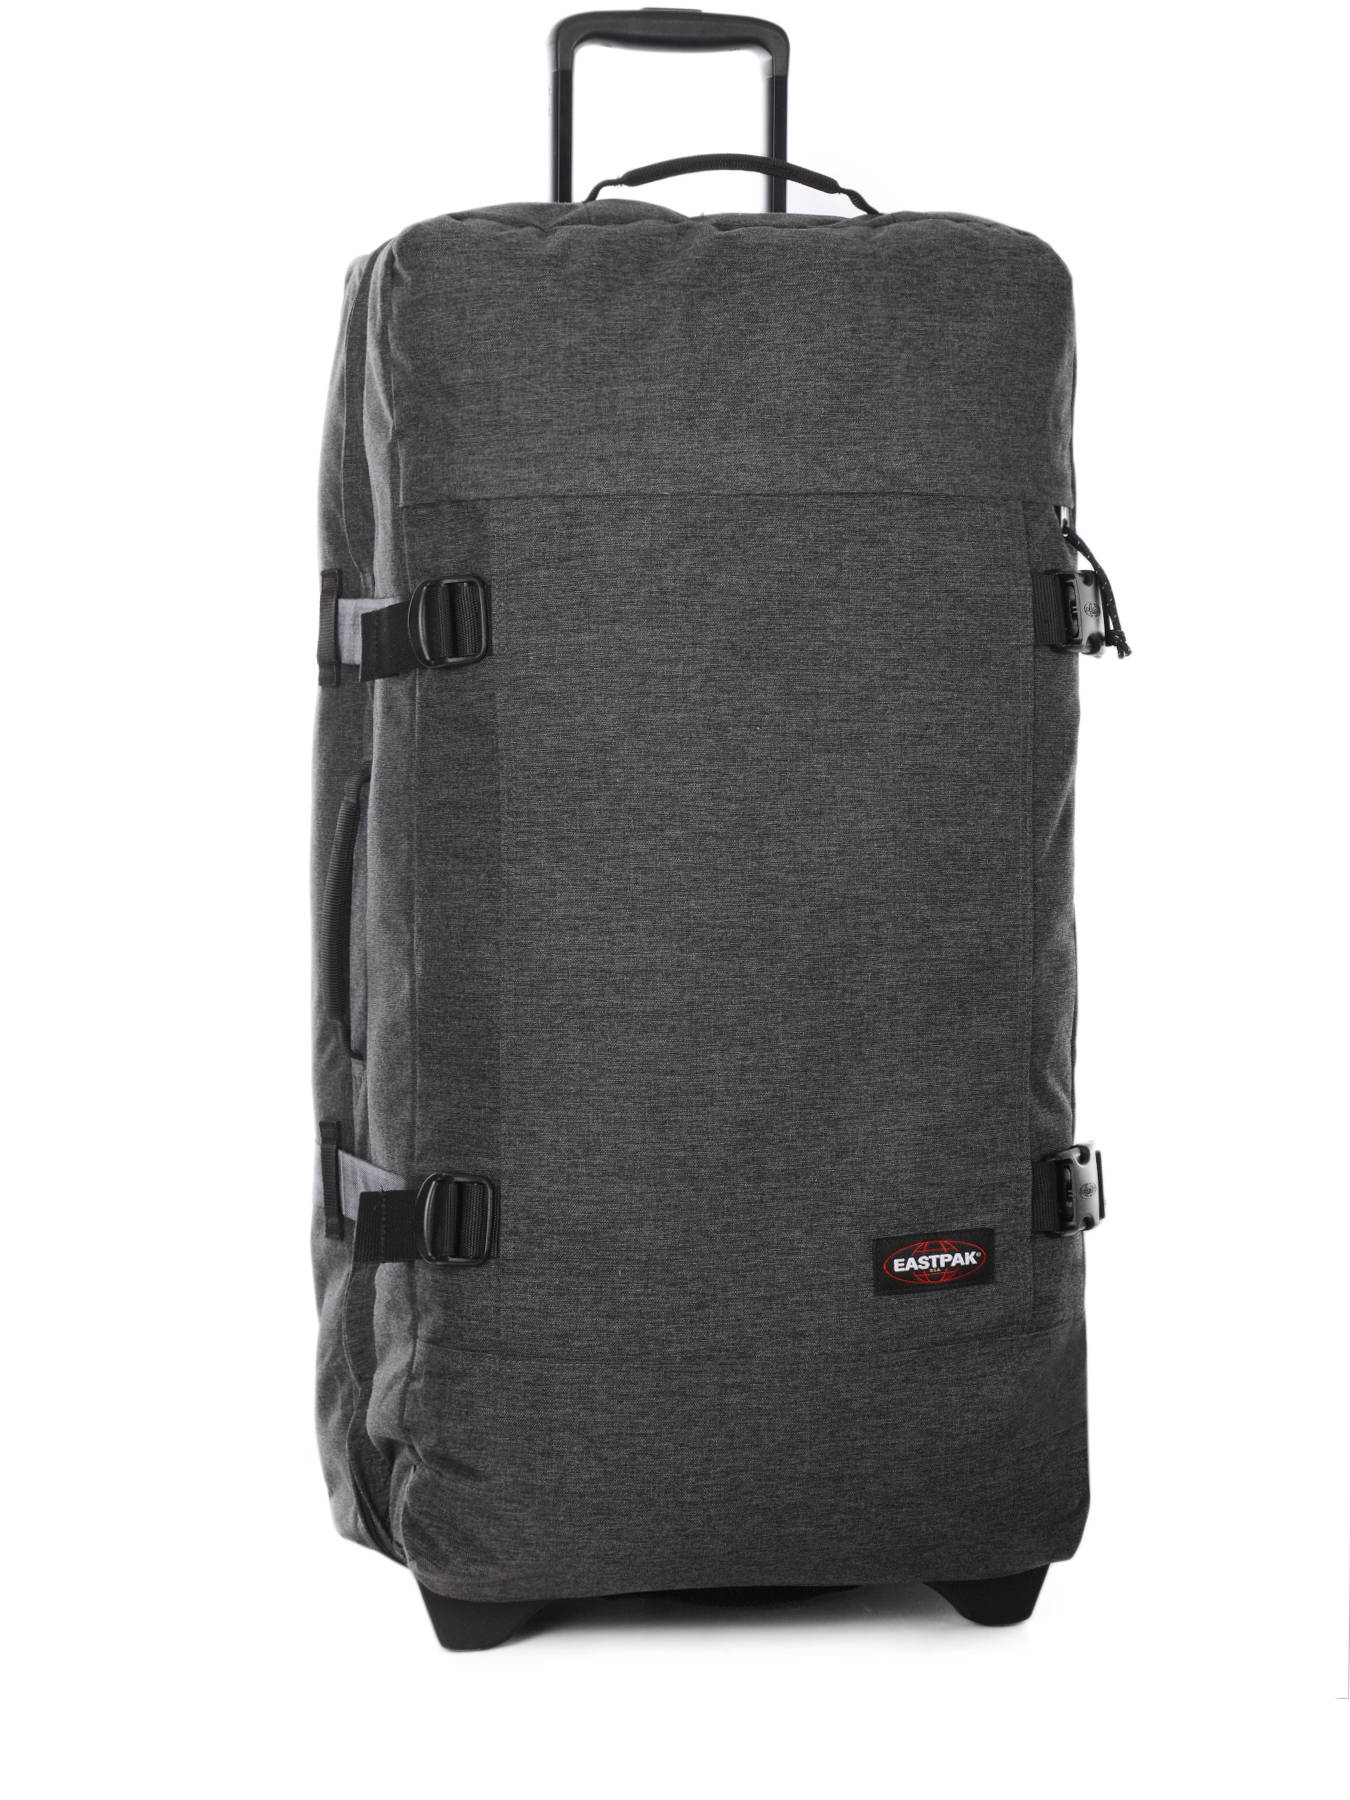 2d8f15d66 ... Softside Luggage Authentic Luggage Eastpak Black authentic luggage K63L  ...